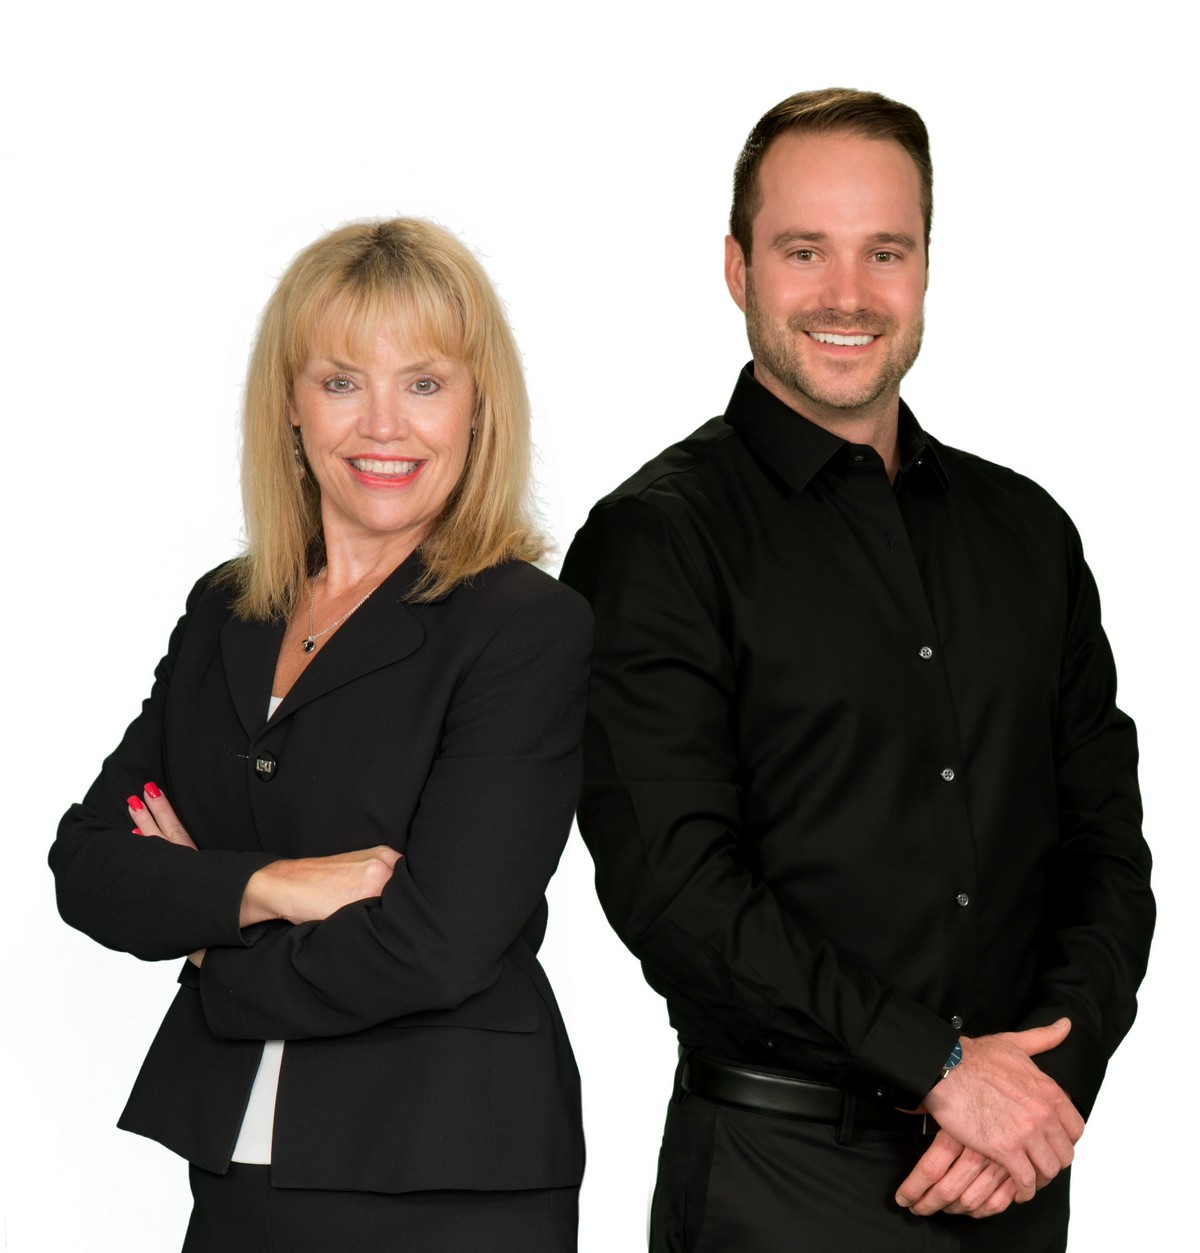 The Julie Moe & Jared Chase Group